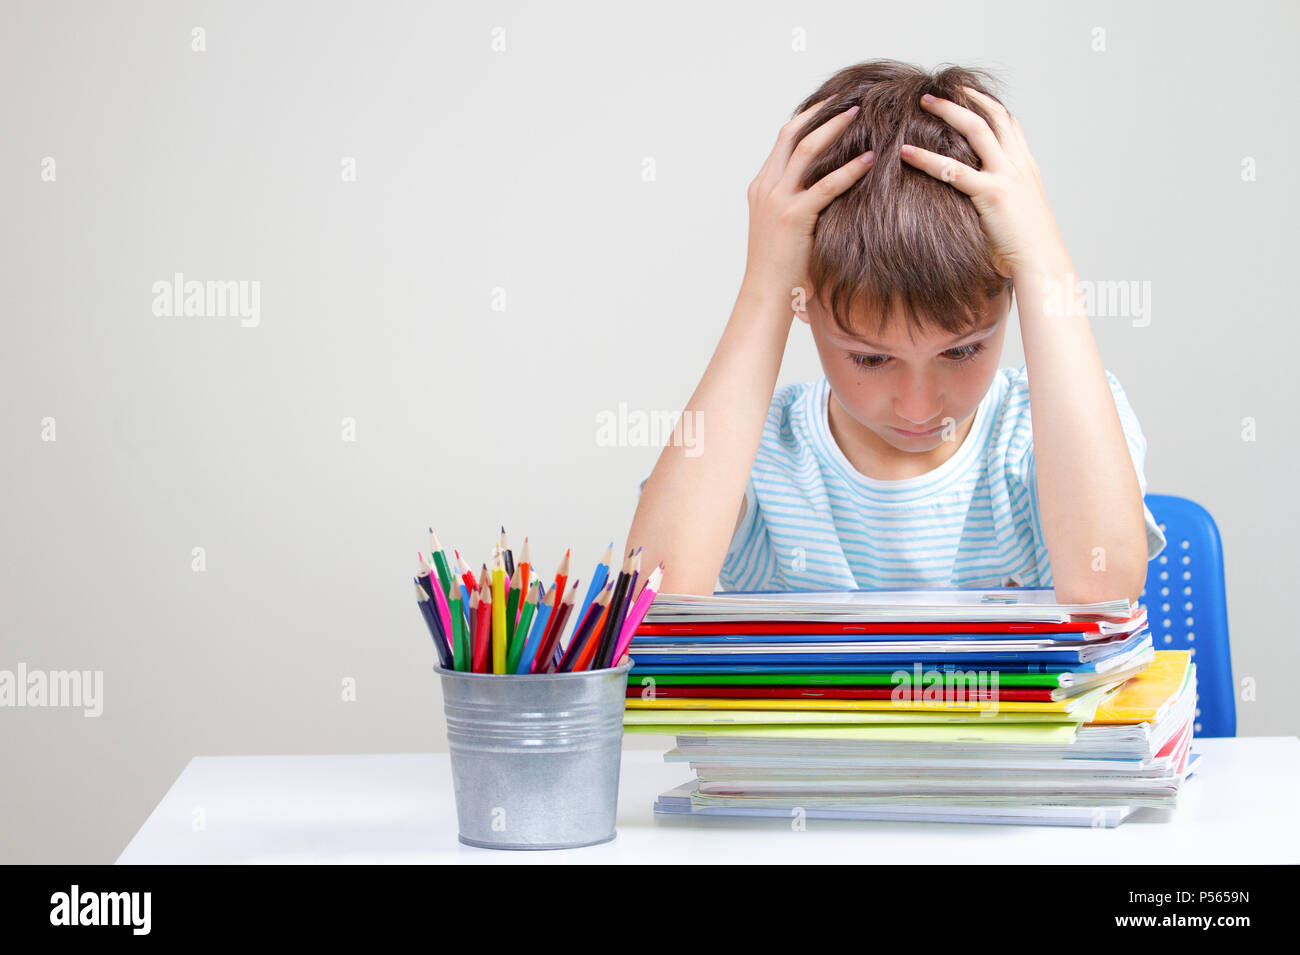 The boy sitting and looking in to books and notebooks. Education, school, learning difficulties concept - Stock Image